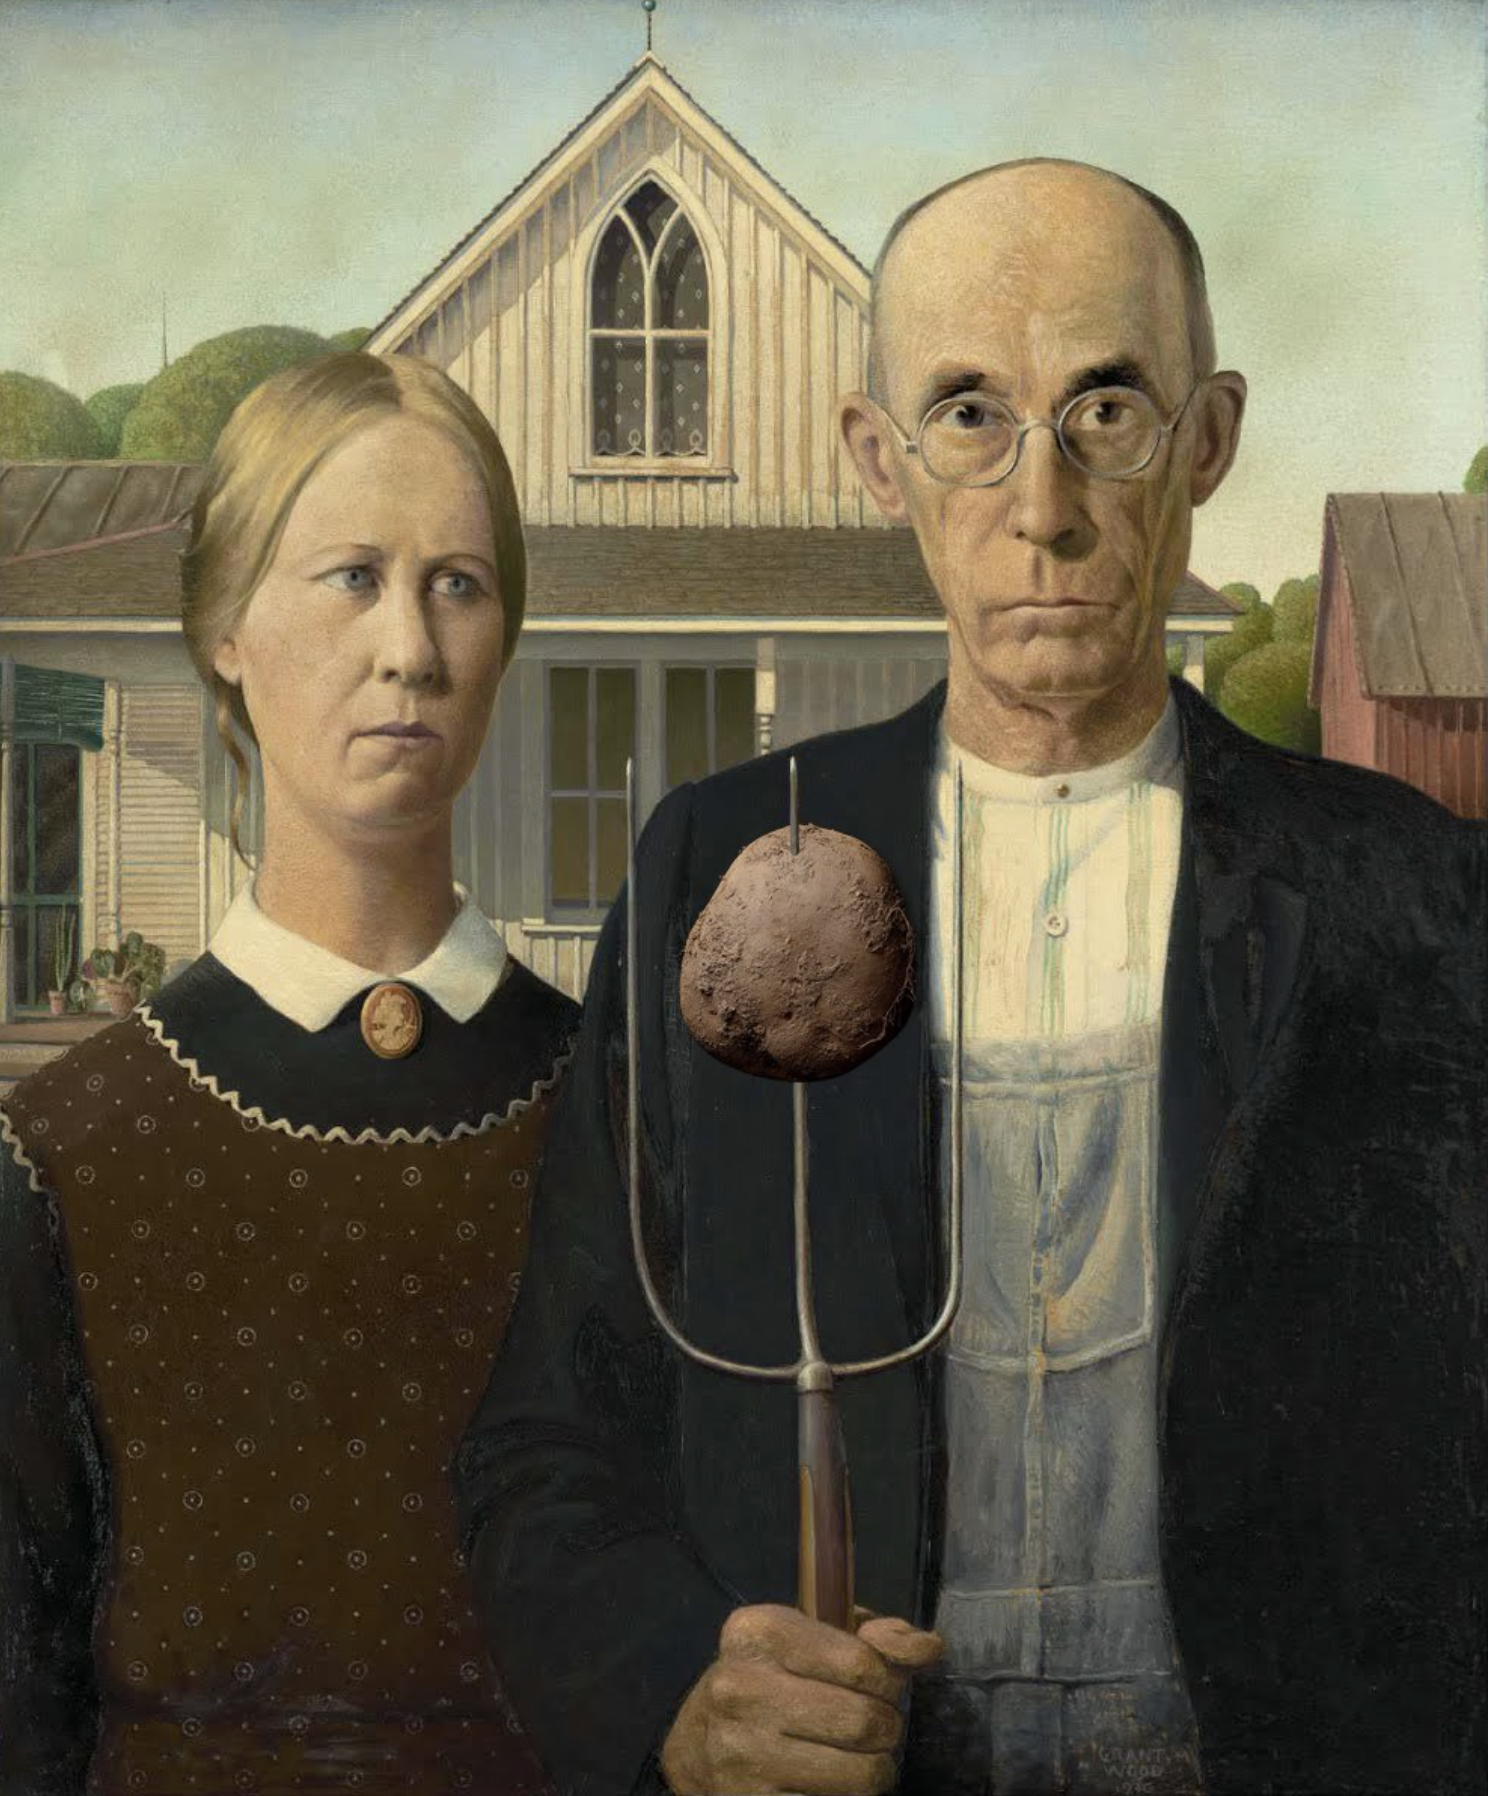 American Gothic with Potato (via @NycAnarchy)